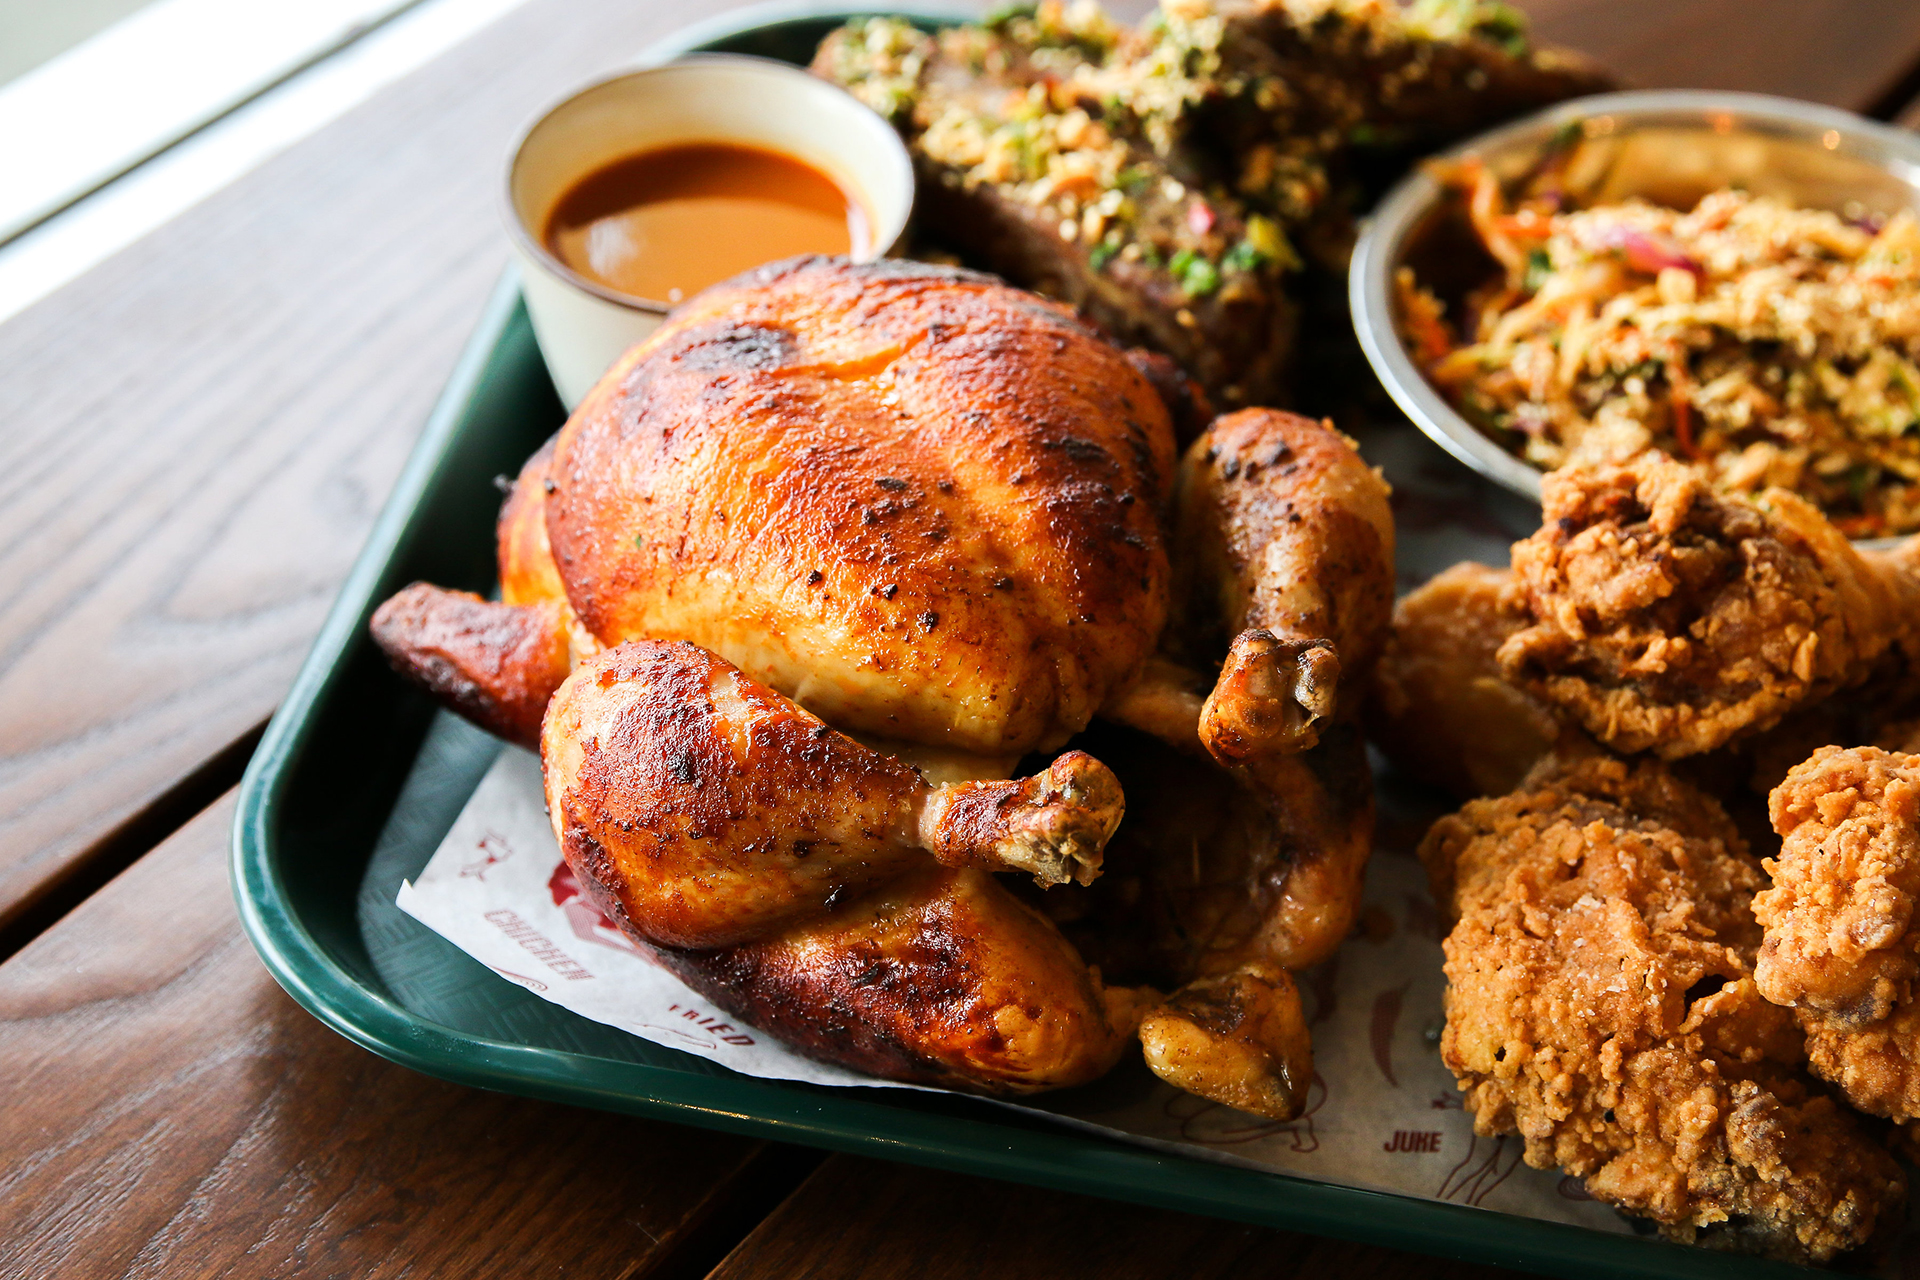 New rotisserie chicken available at Little Juke only